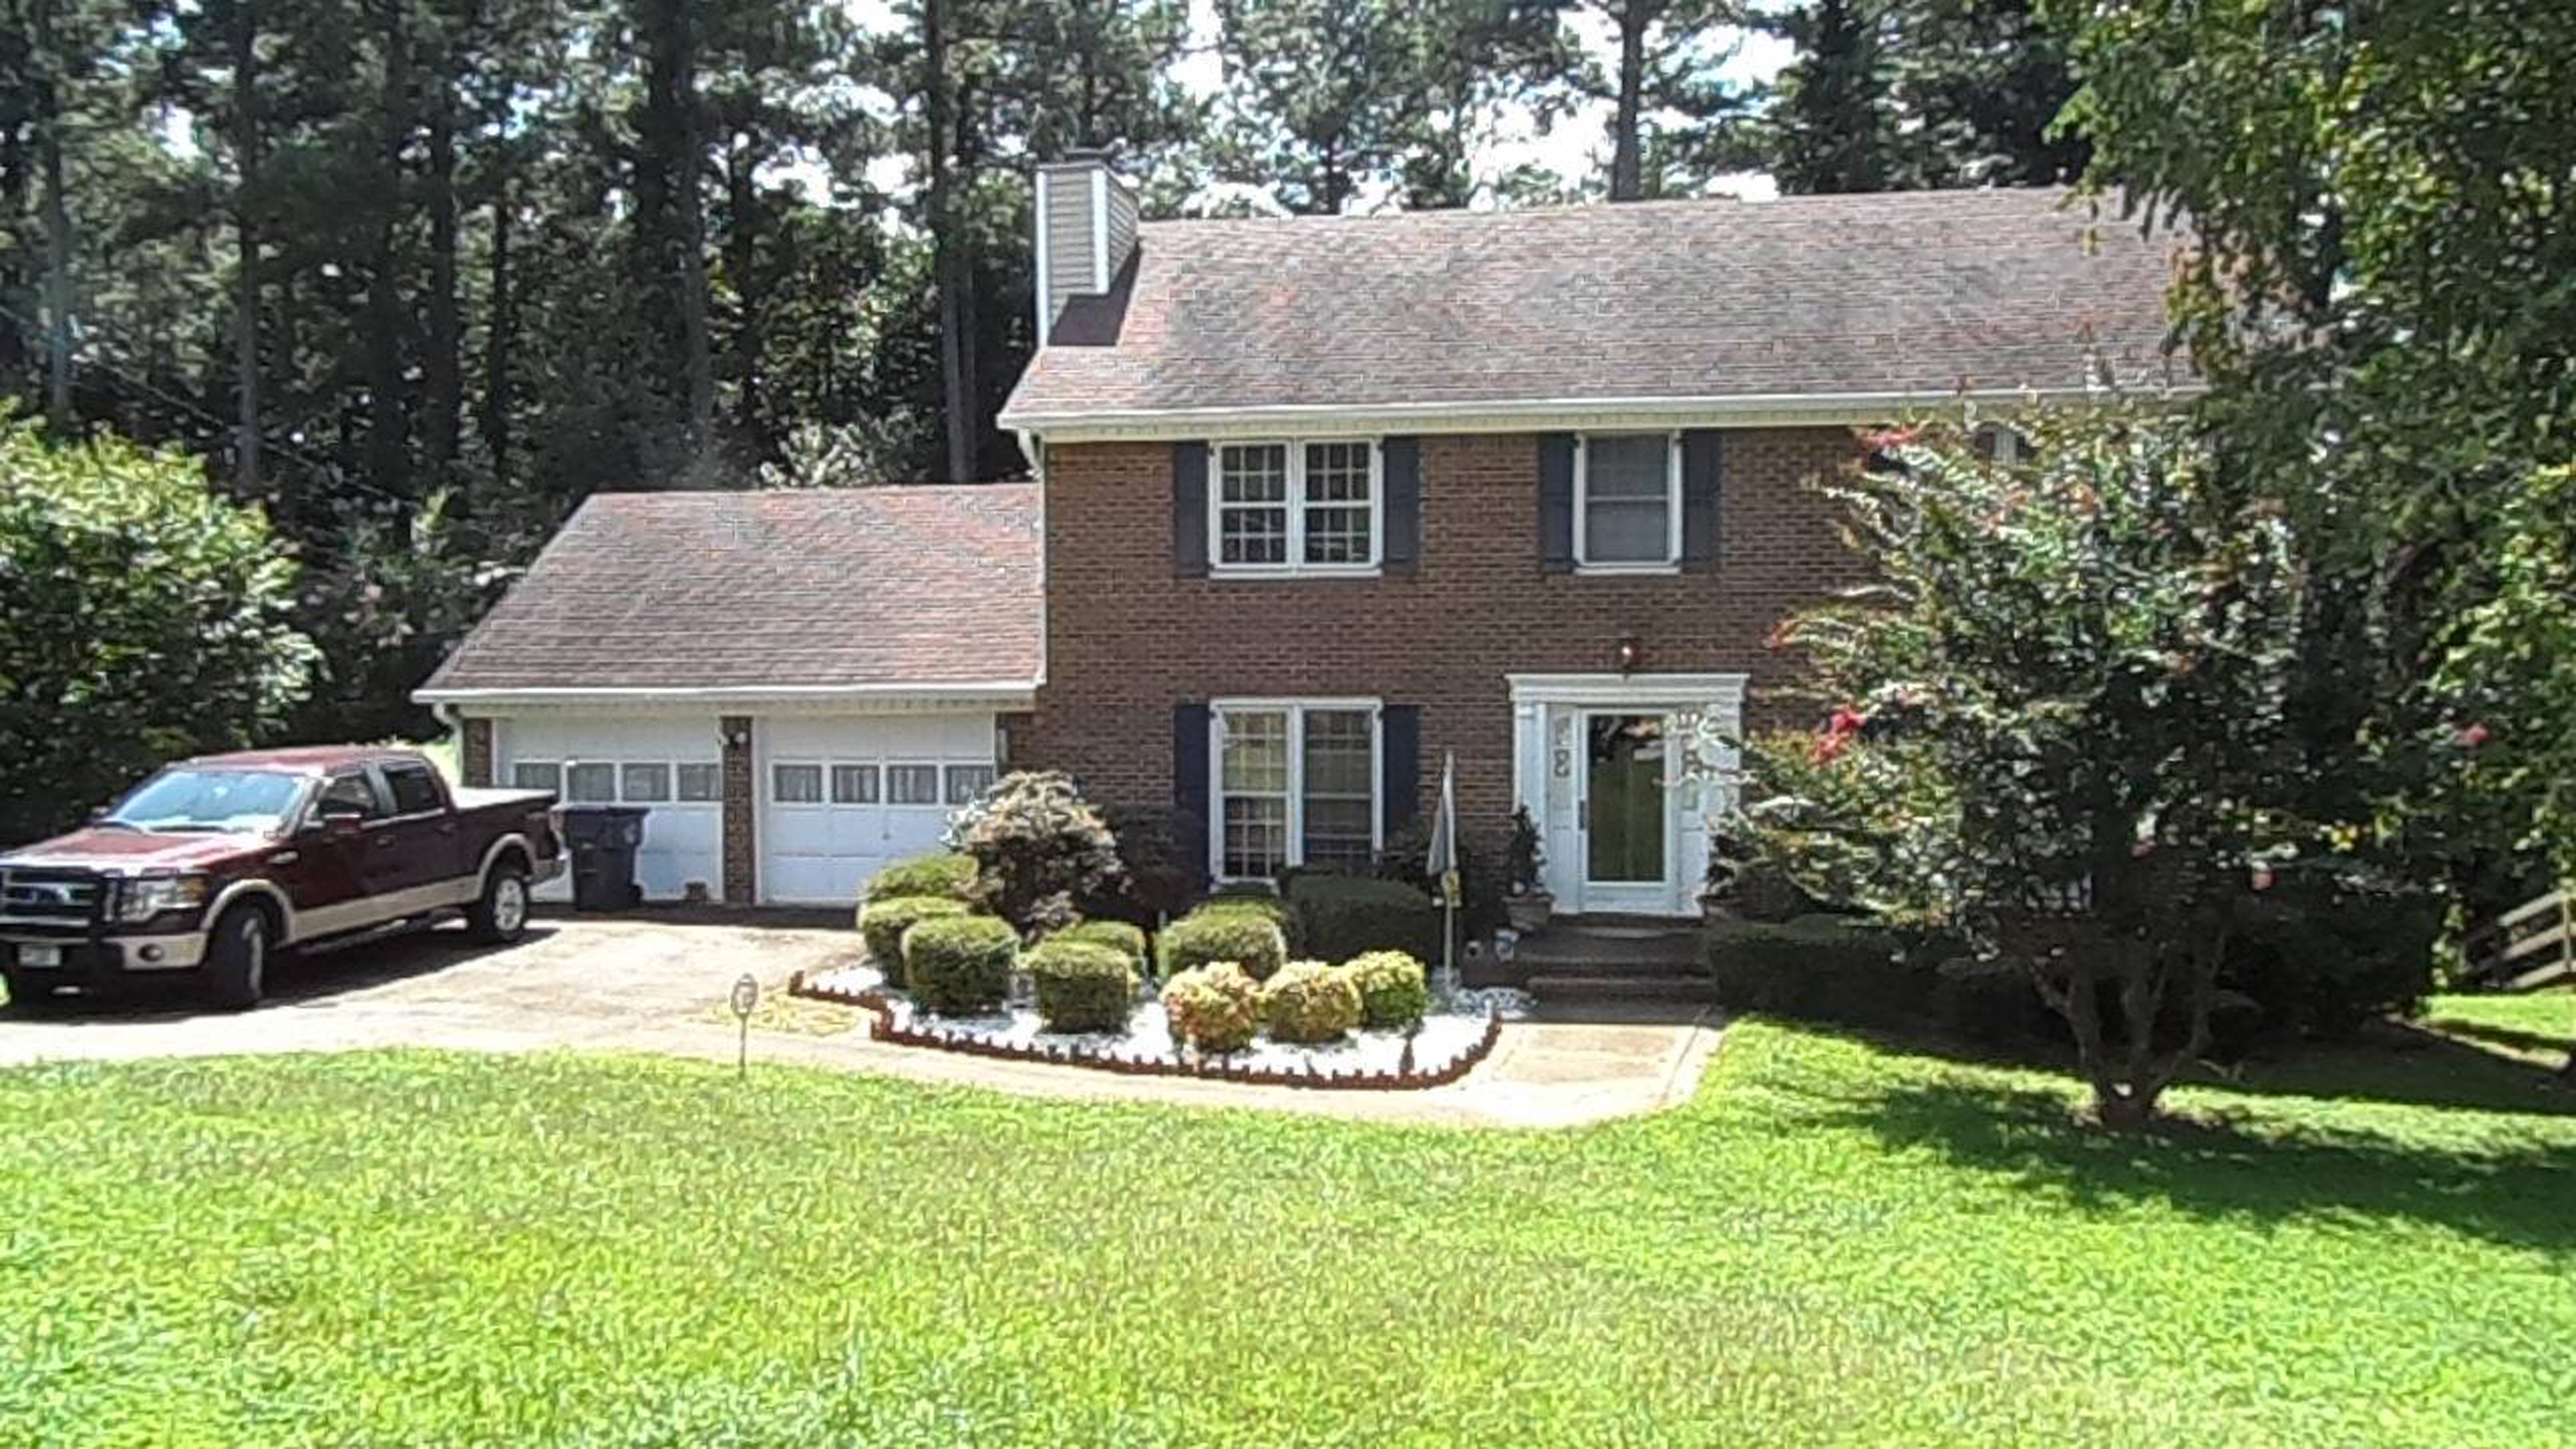 Home for sale in Suwanee, GA